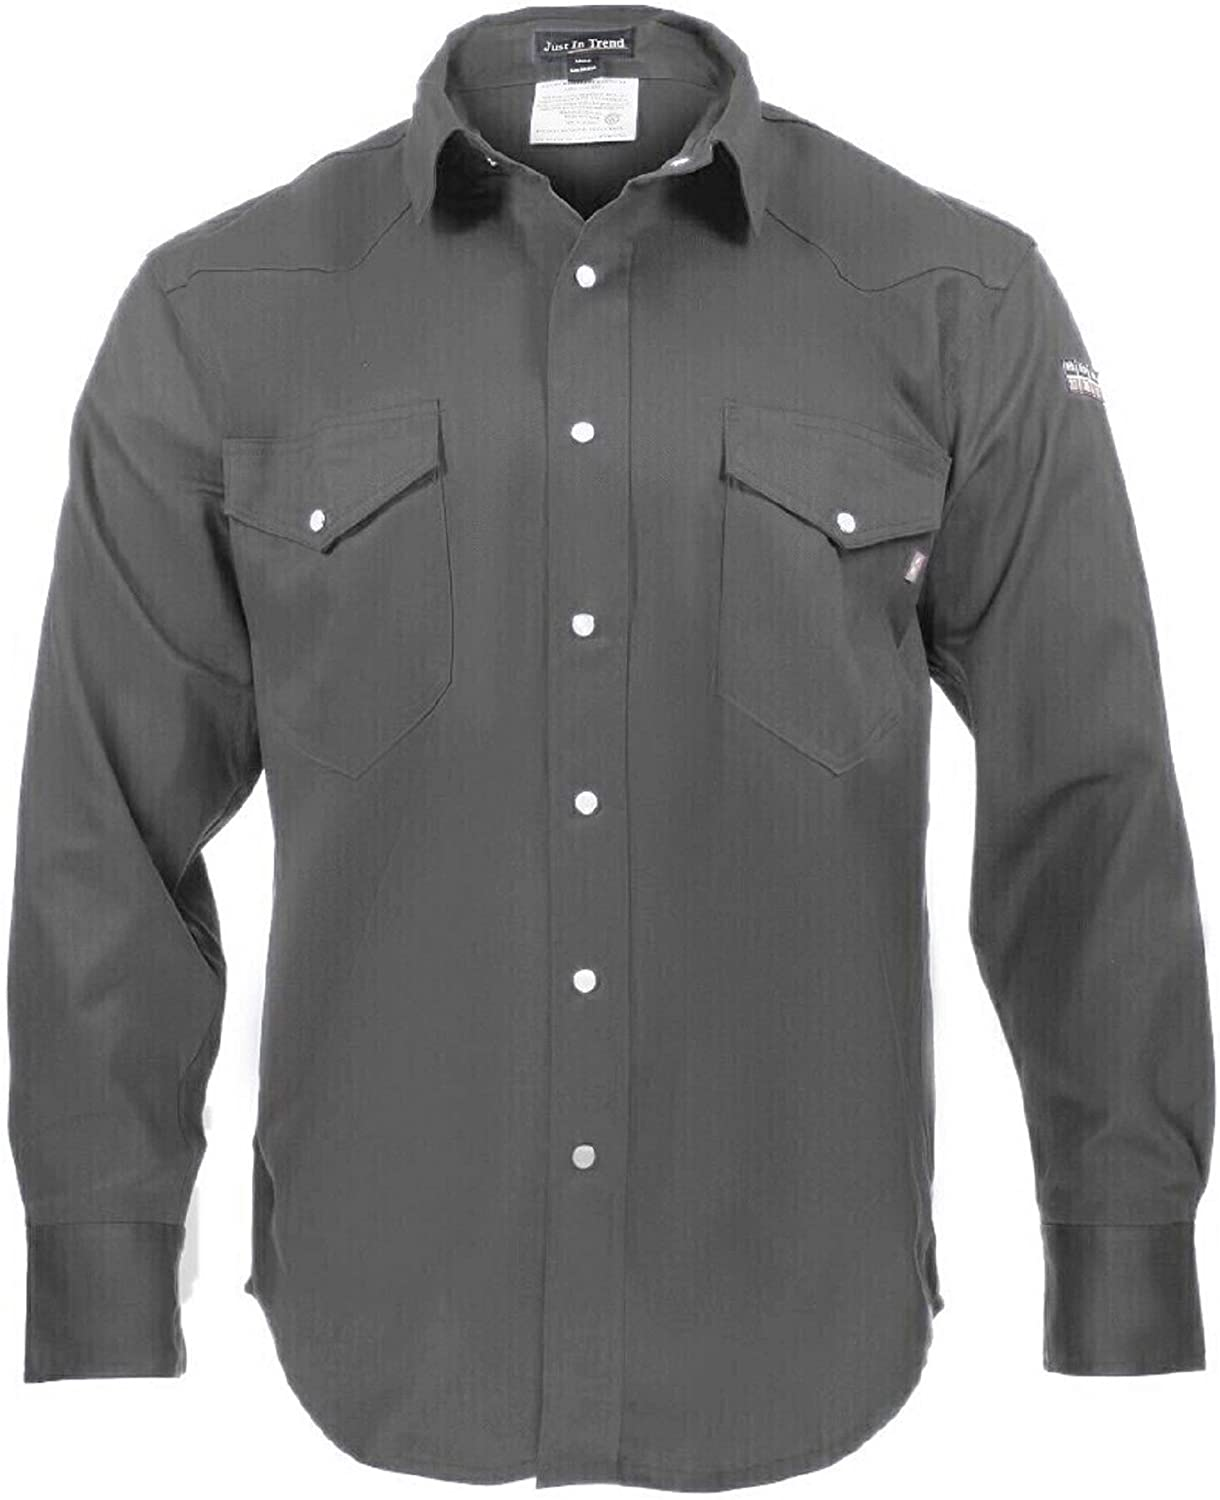 Flame Resistant FR Shirt - 100% C - Light Weight: Clothing